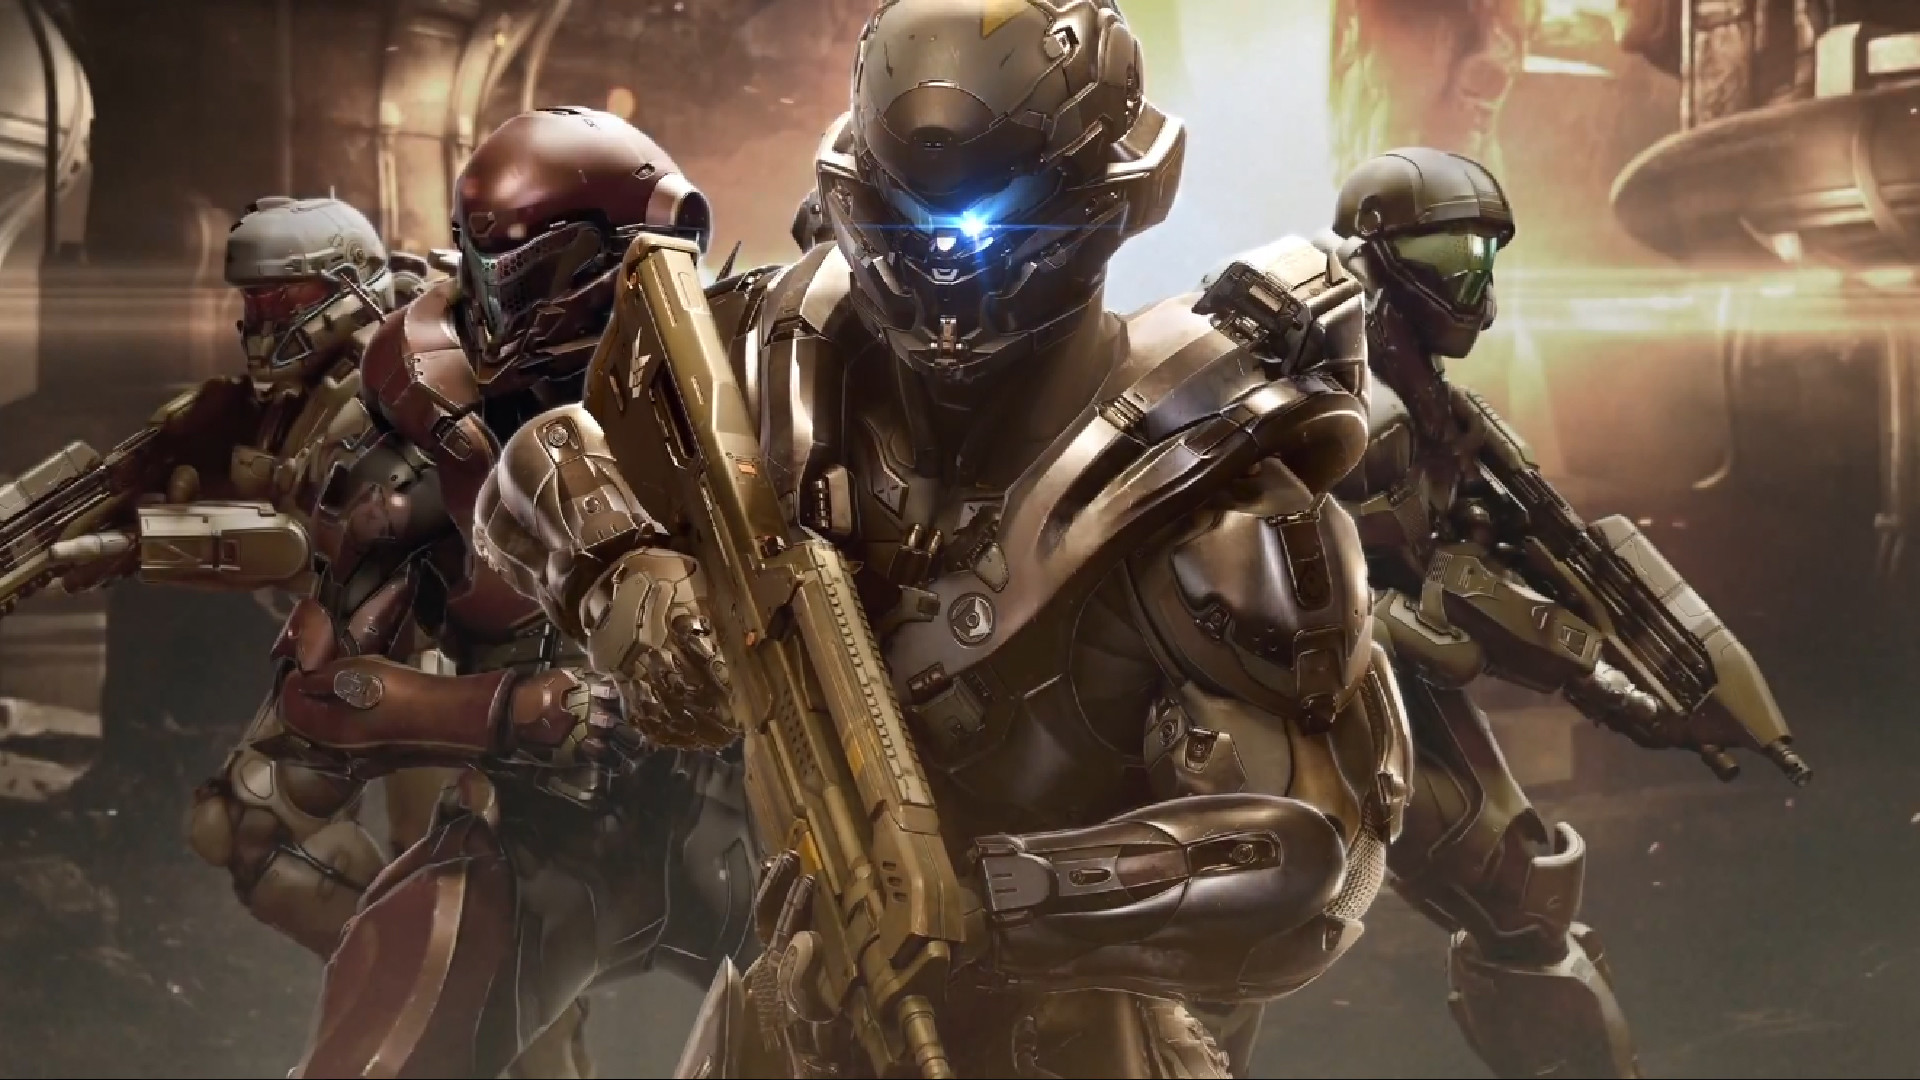 Halo 5: Guardians   Wallpapers from the Animated Poster